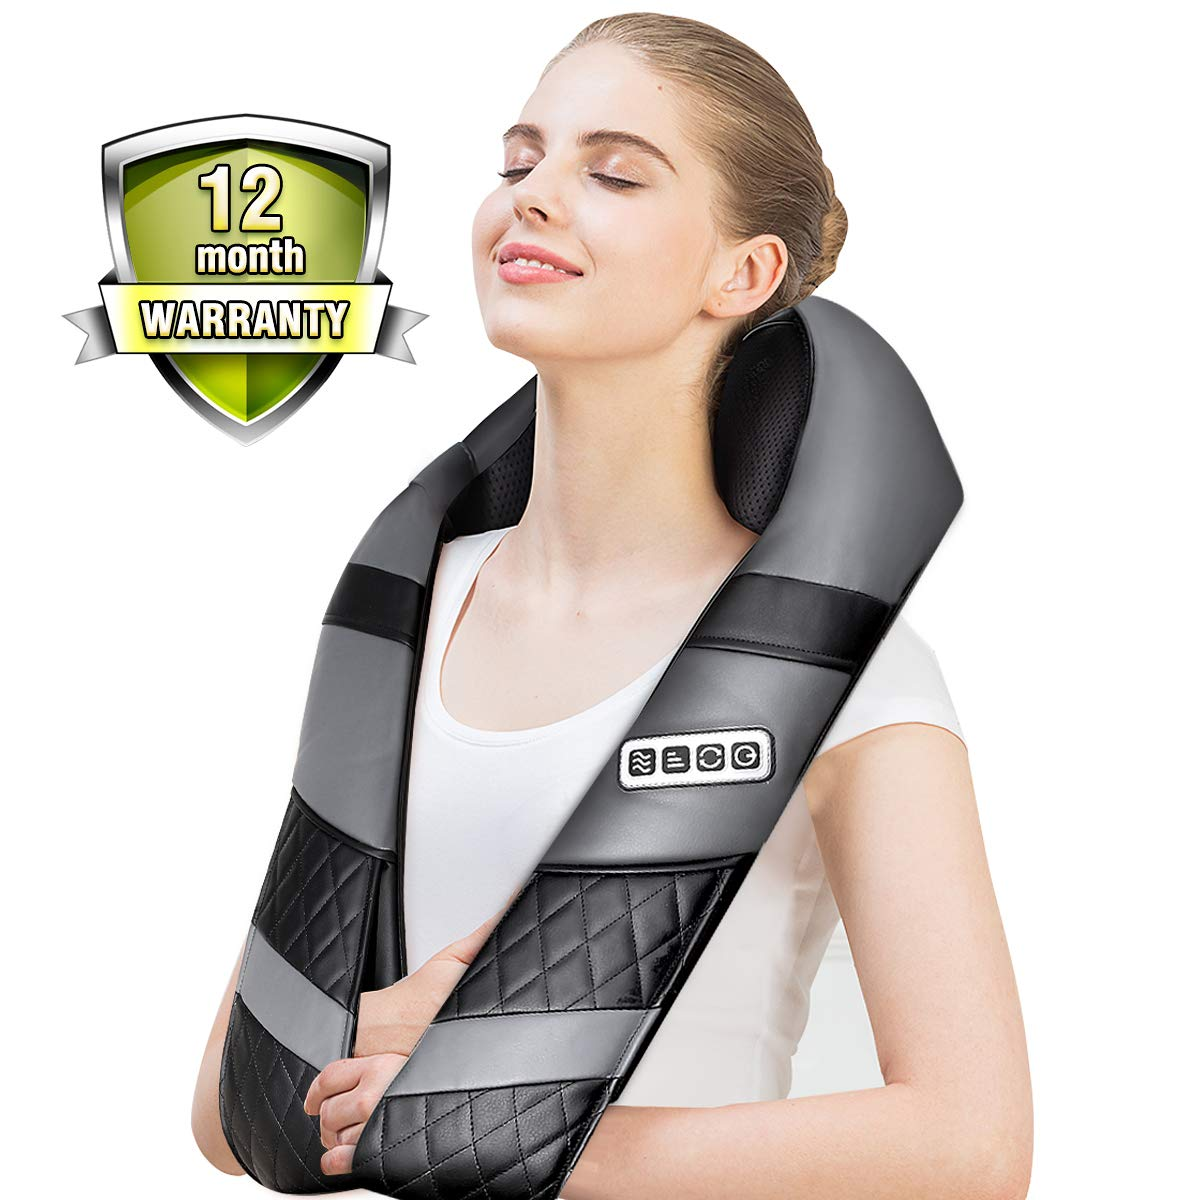 Shiatsu Back Shoulder Neck Massager with Heat – Deep 3D Kneading Massage Shawl for Neck Shoulder Back Waist Hips Legs Foot Whole Body, Relieve Muscle Pains Soreness and Tensions at Home Office